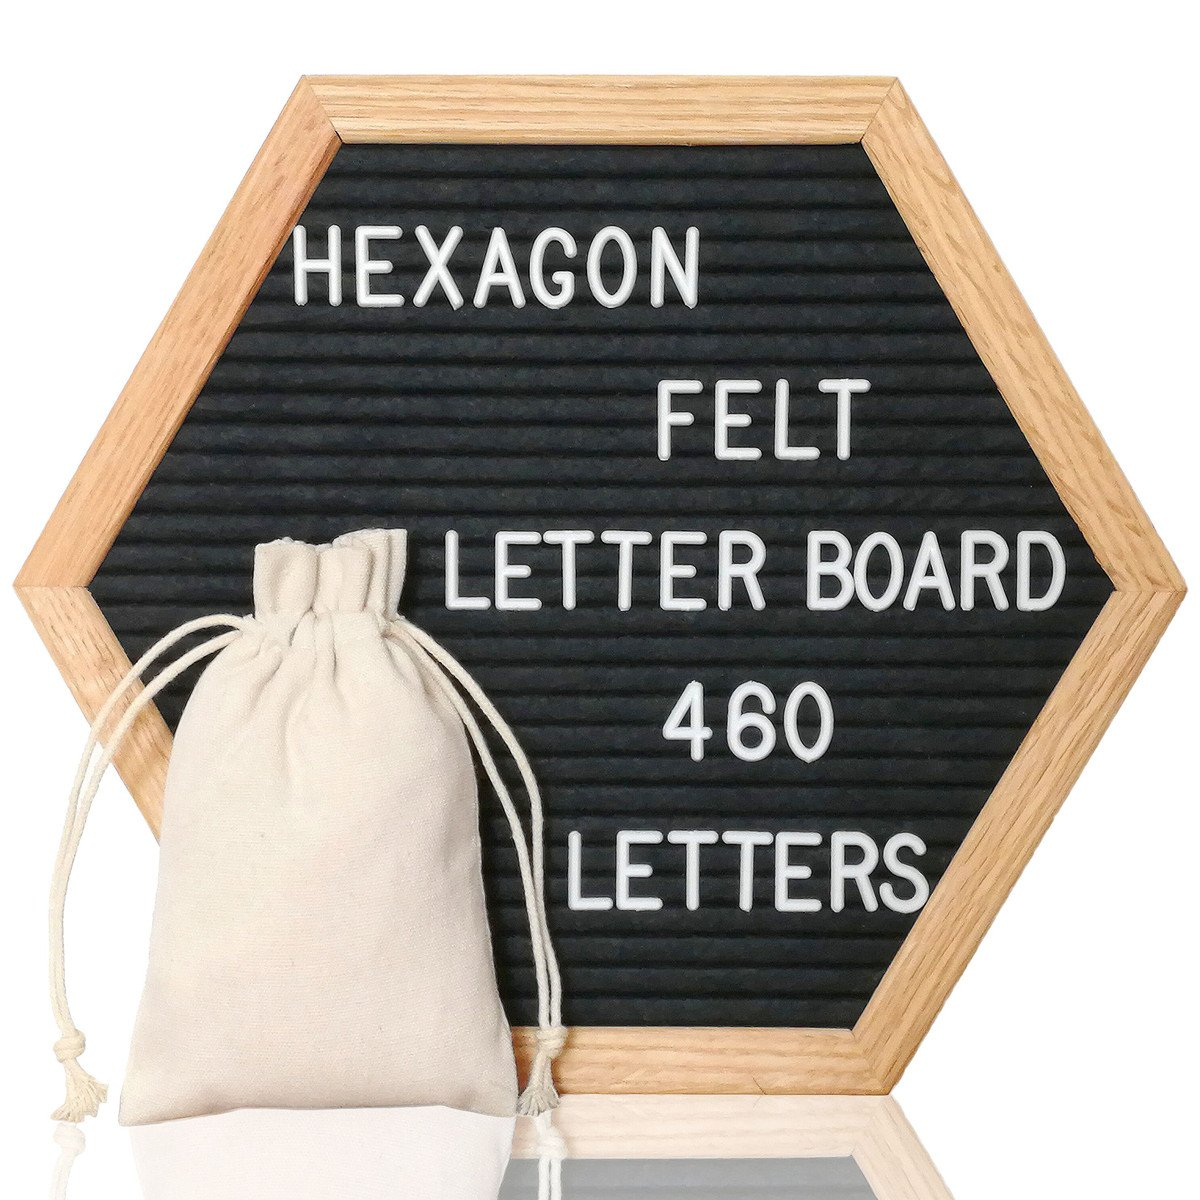 Letter Board Black Felt Letter Board 12 x 12 inches Changeable Letter Board with 460 White Letters, Premium Oak Wood Frame, Free Canvas Bag and Sawtooth Hanger Hook VAG024BK